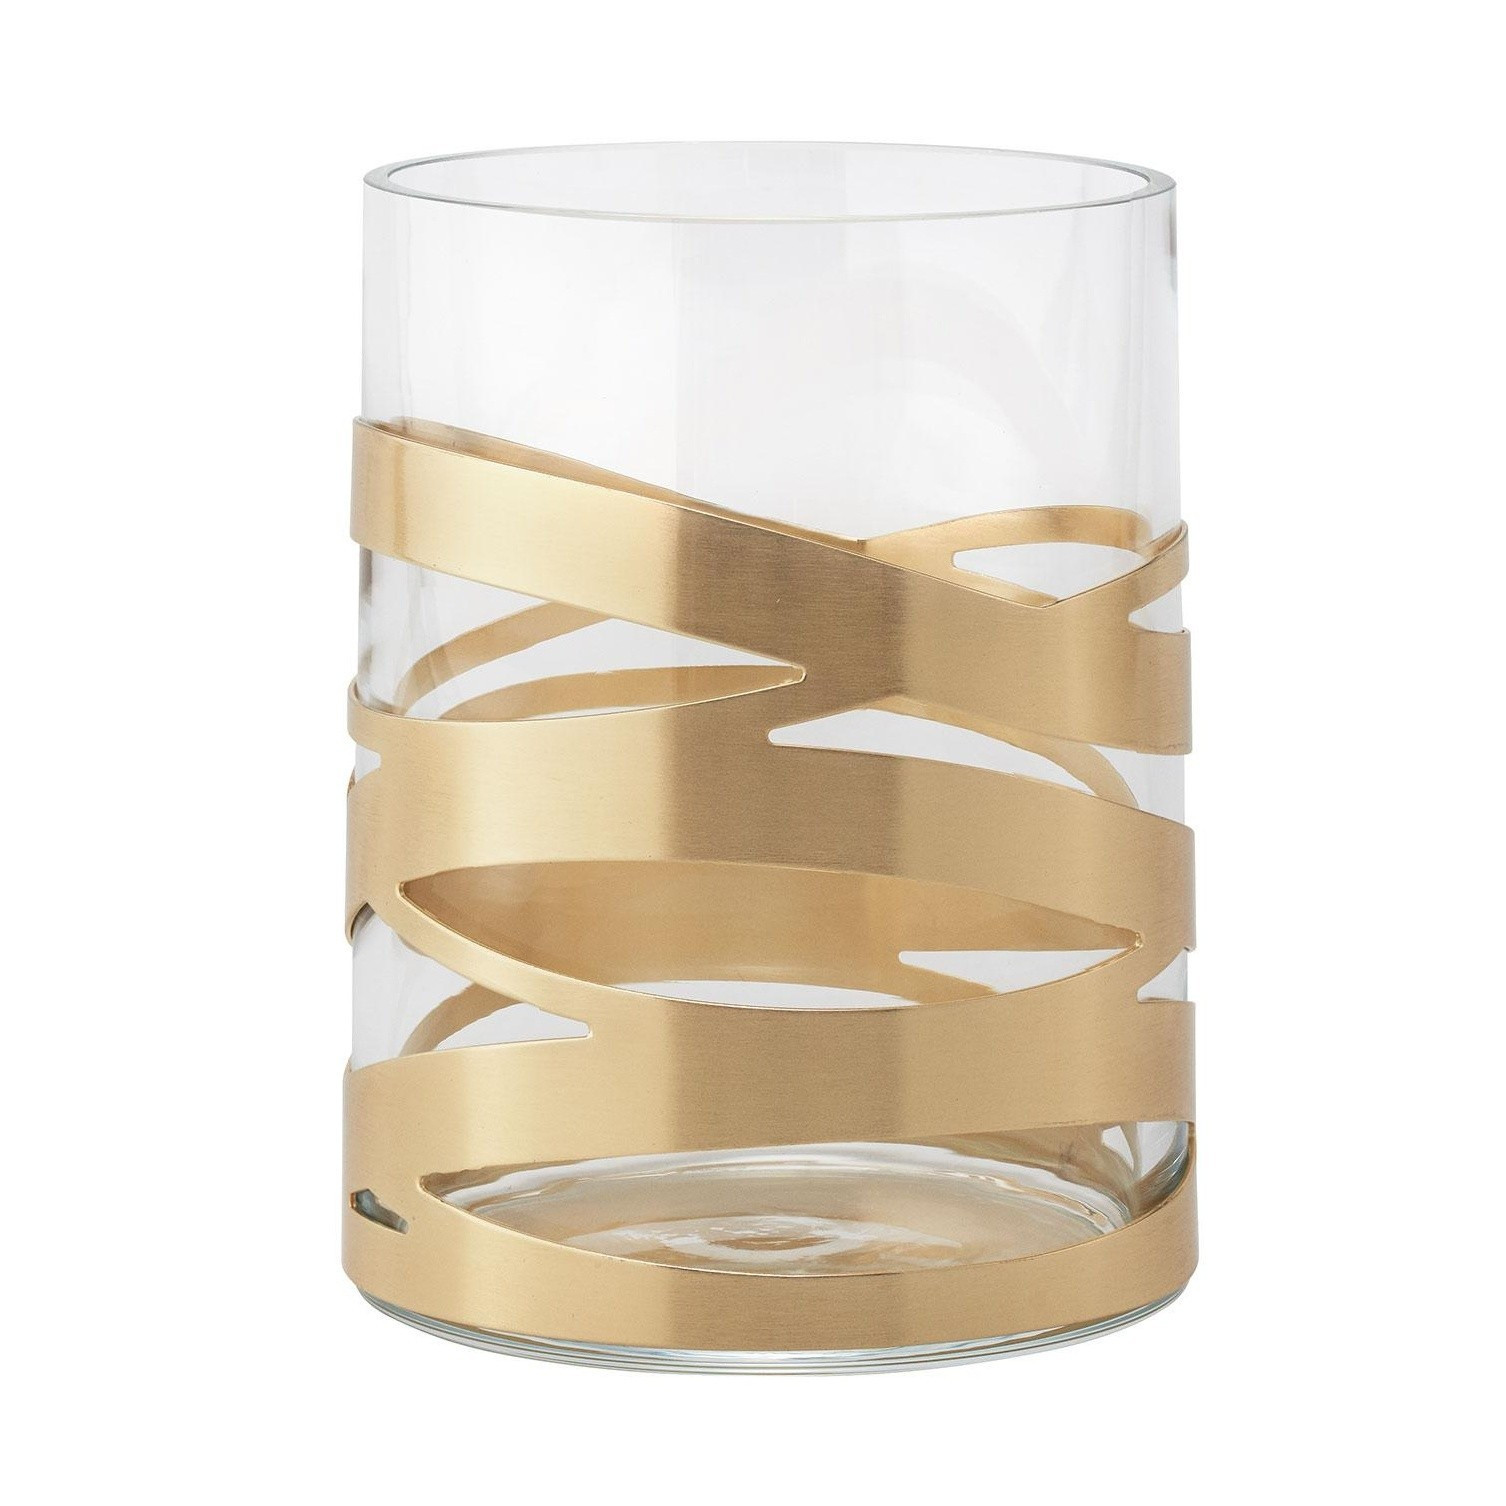 alvar aalto vase of stelton tangle vase ambientedirect throughout stelton tangle vase